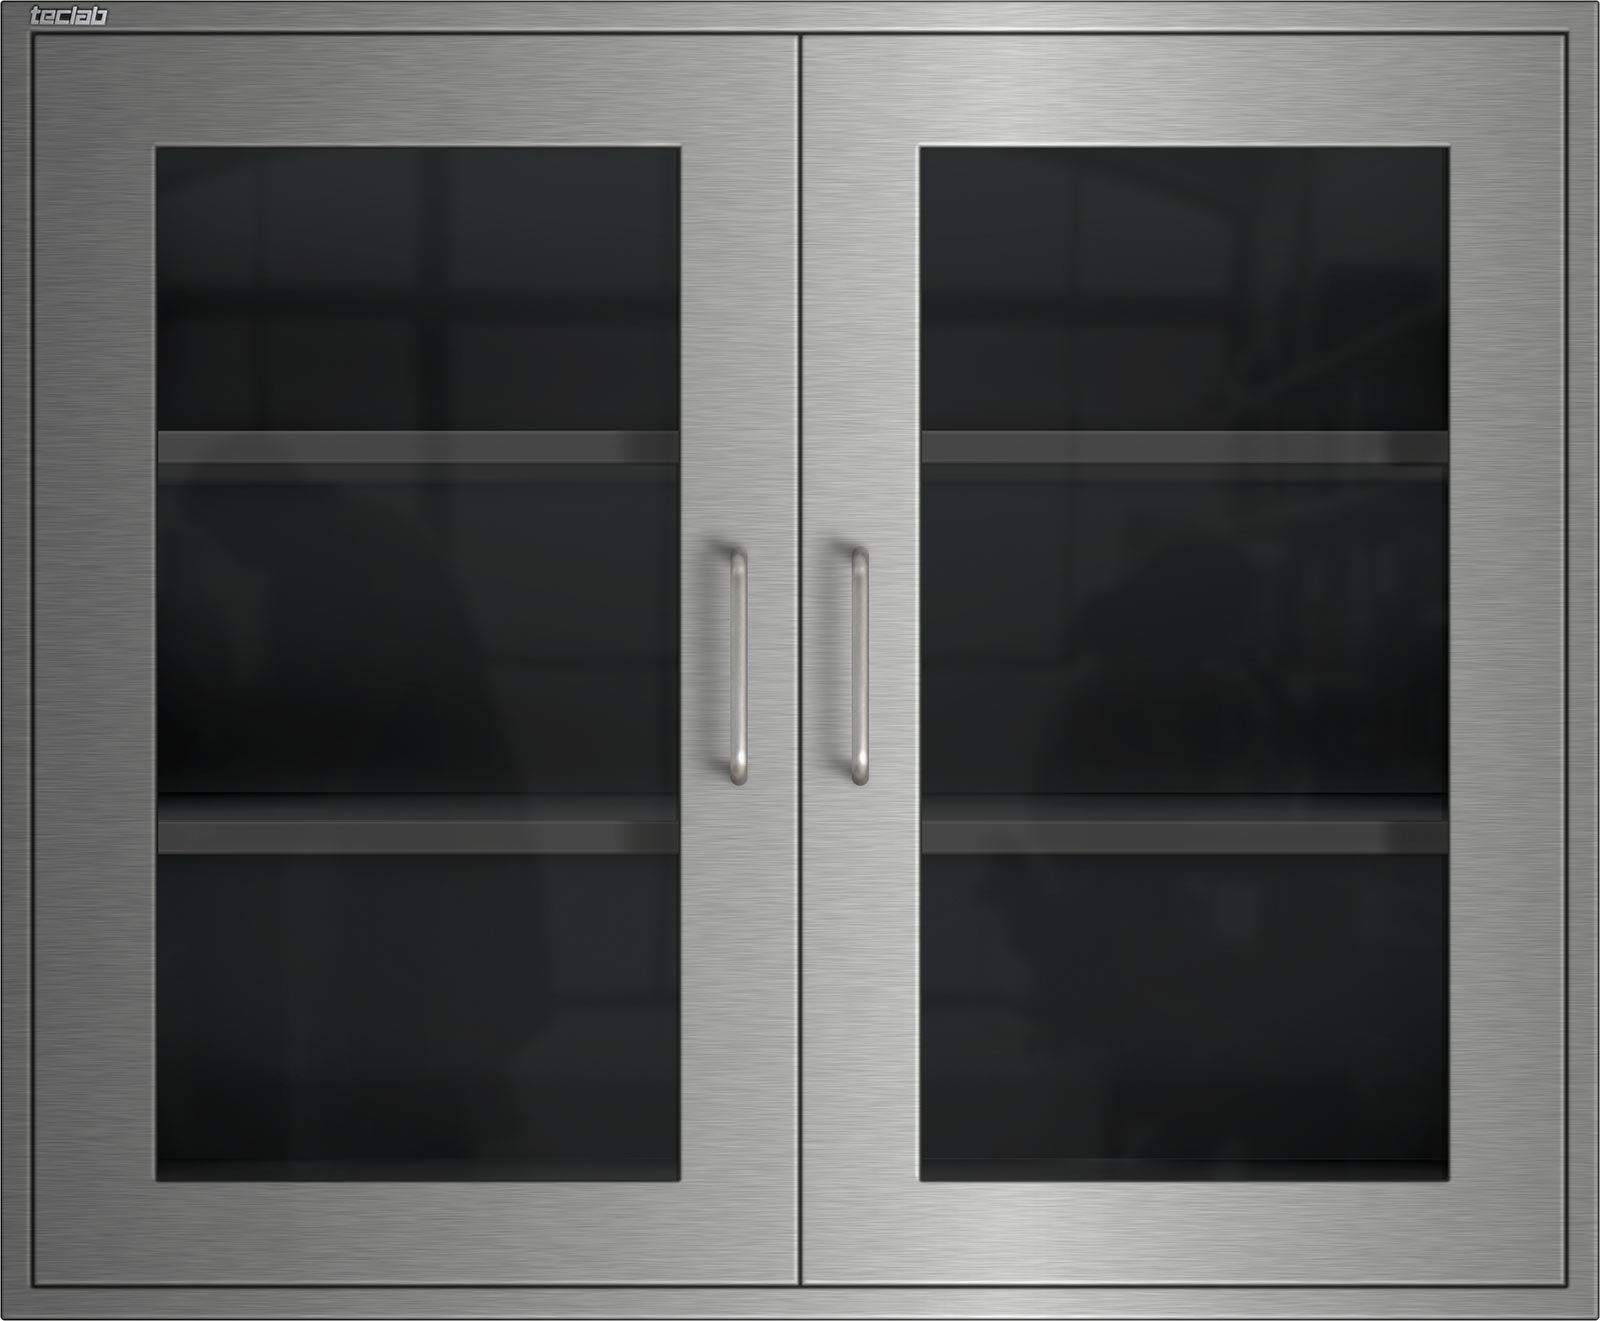 Teclab Stainless Steel Wall Cabinet